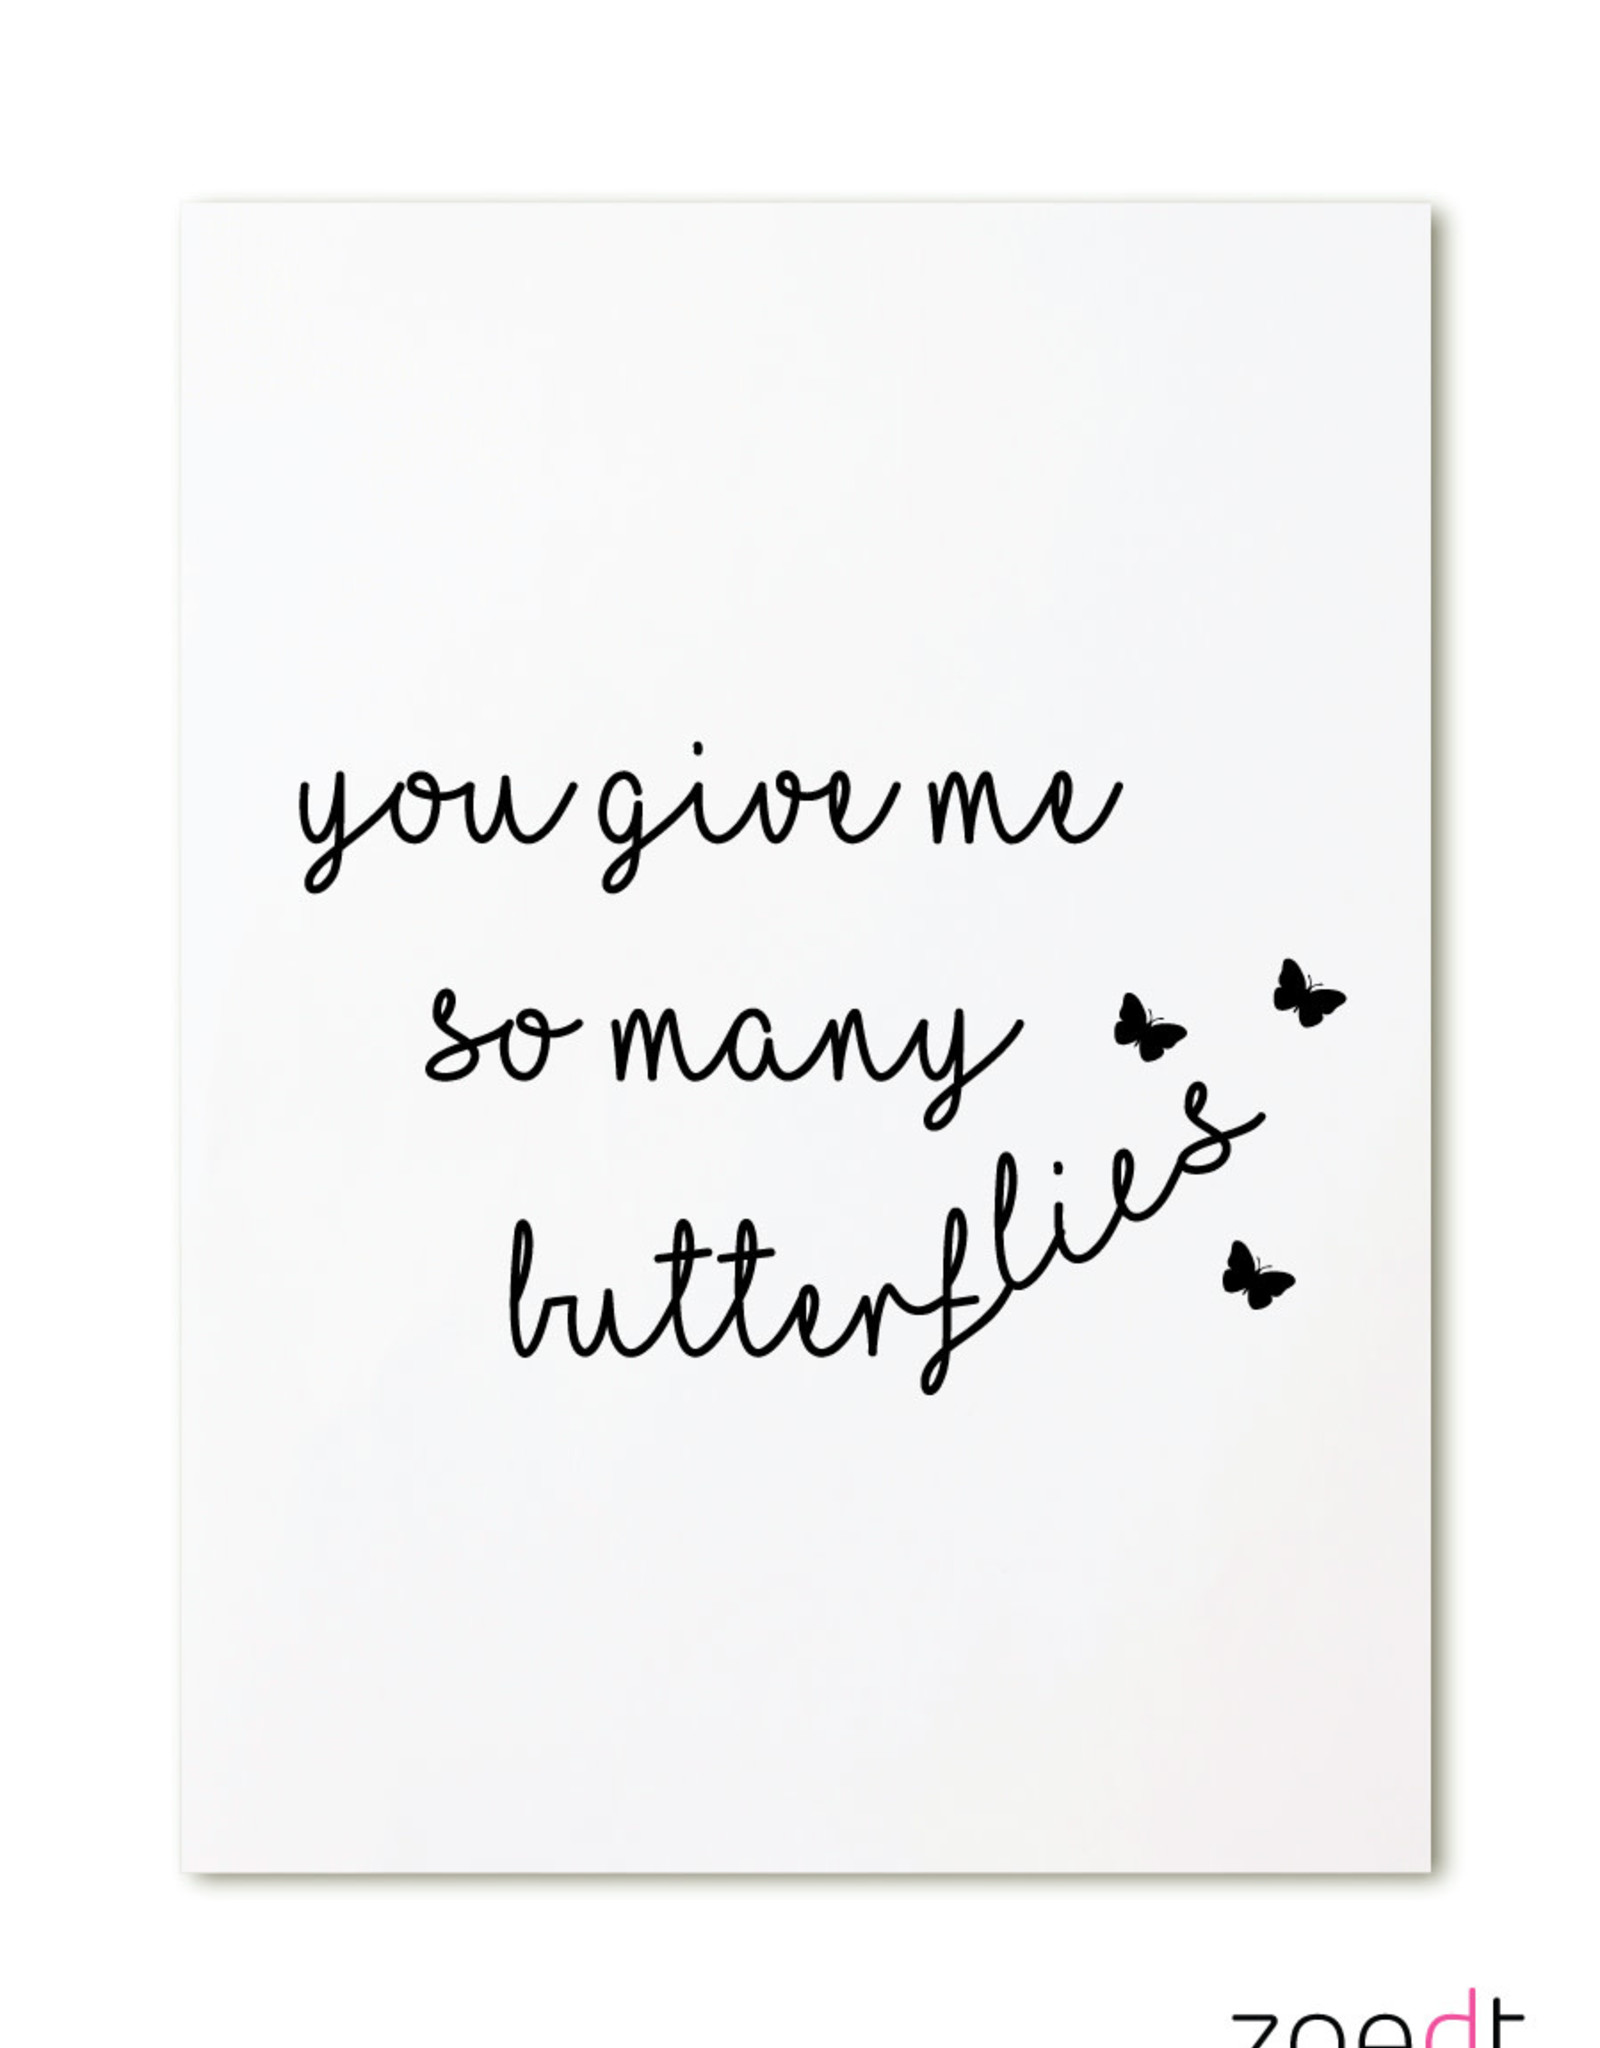 zoedt kaart a6 Zoedt: you give me so many butterflies